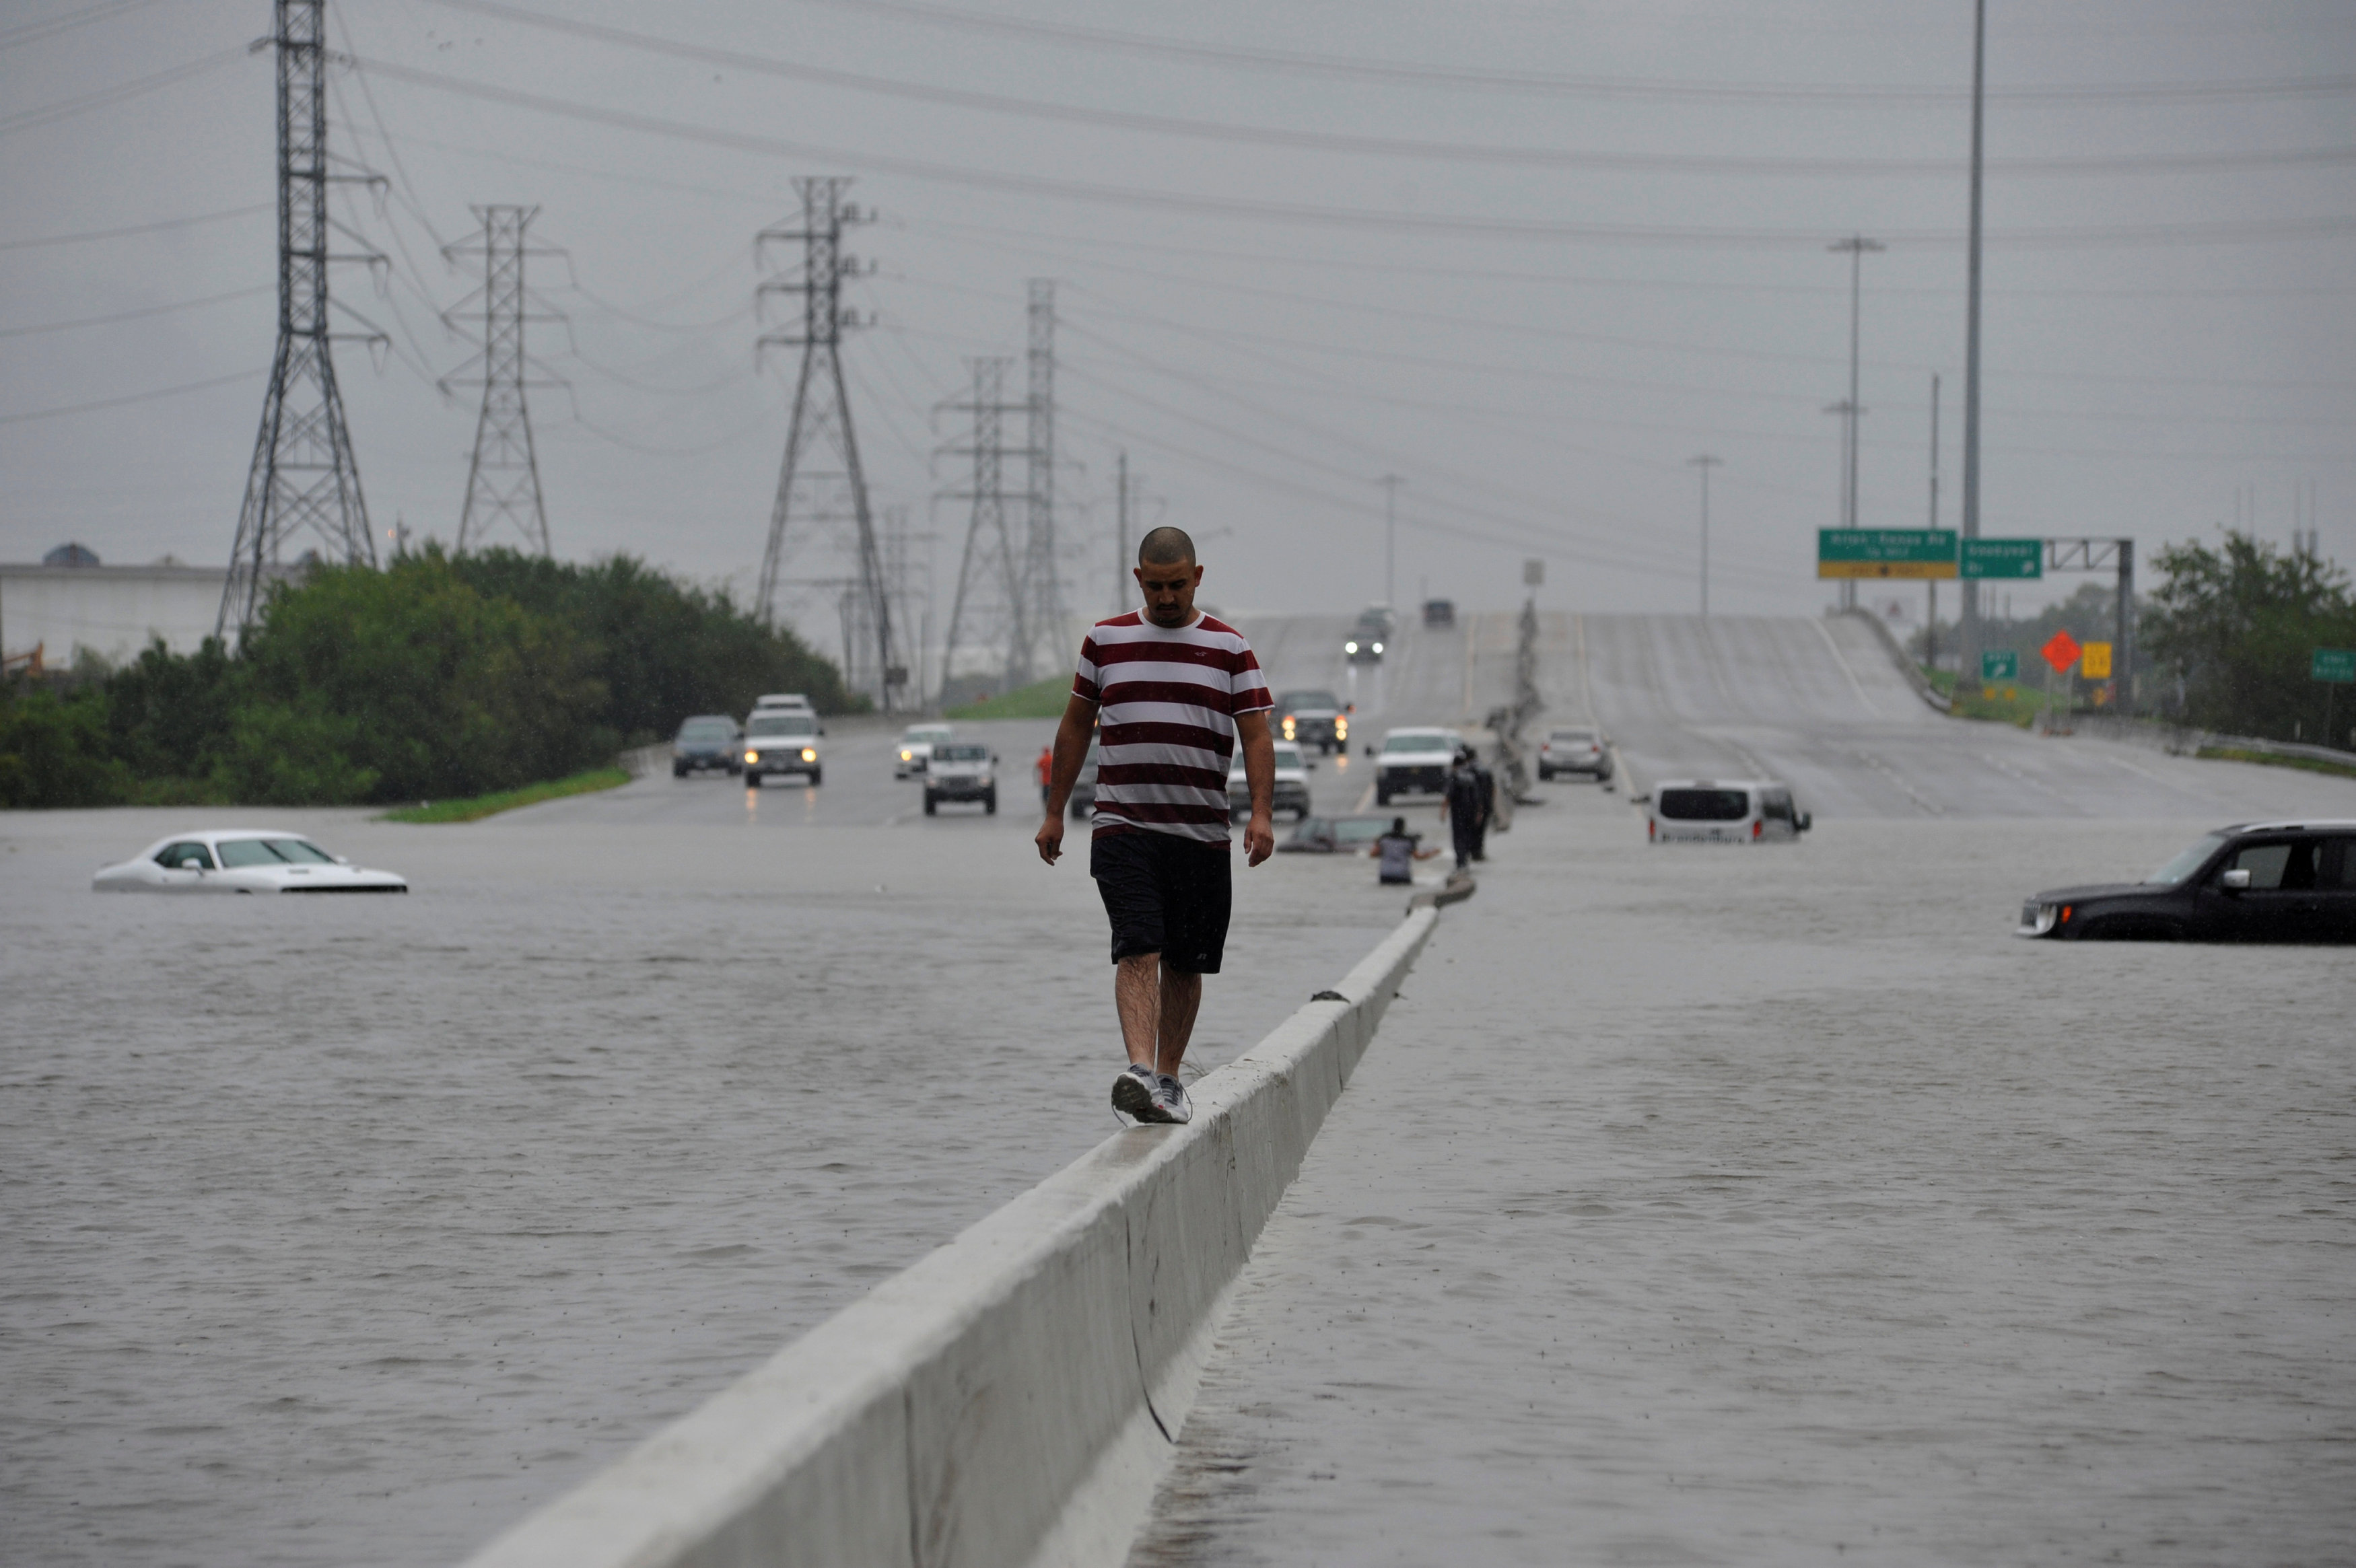 A stranded motorist escapes floodwaters on Interstate 225 after Hurricane Harvey inundated the Texas Gulf coast with rain causing mass flooding, in Houston, Texas, U.S. on Aug. 27, 2017.  (REUTERS/Nick Oxford)